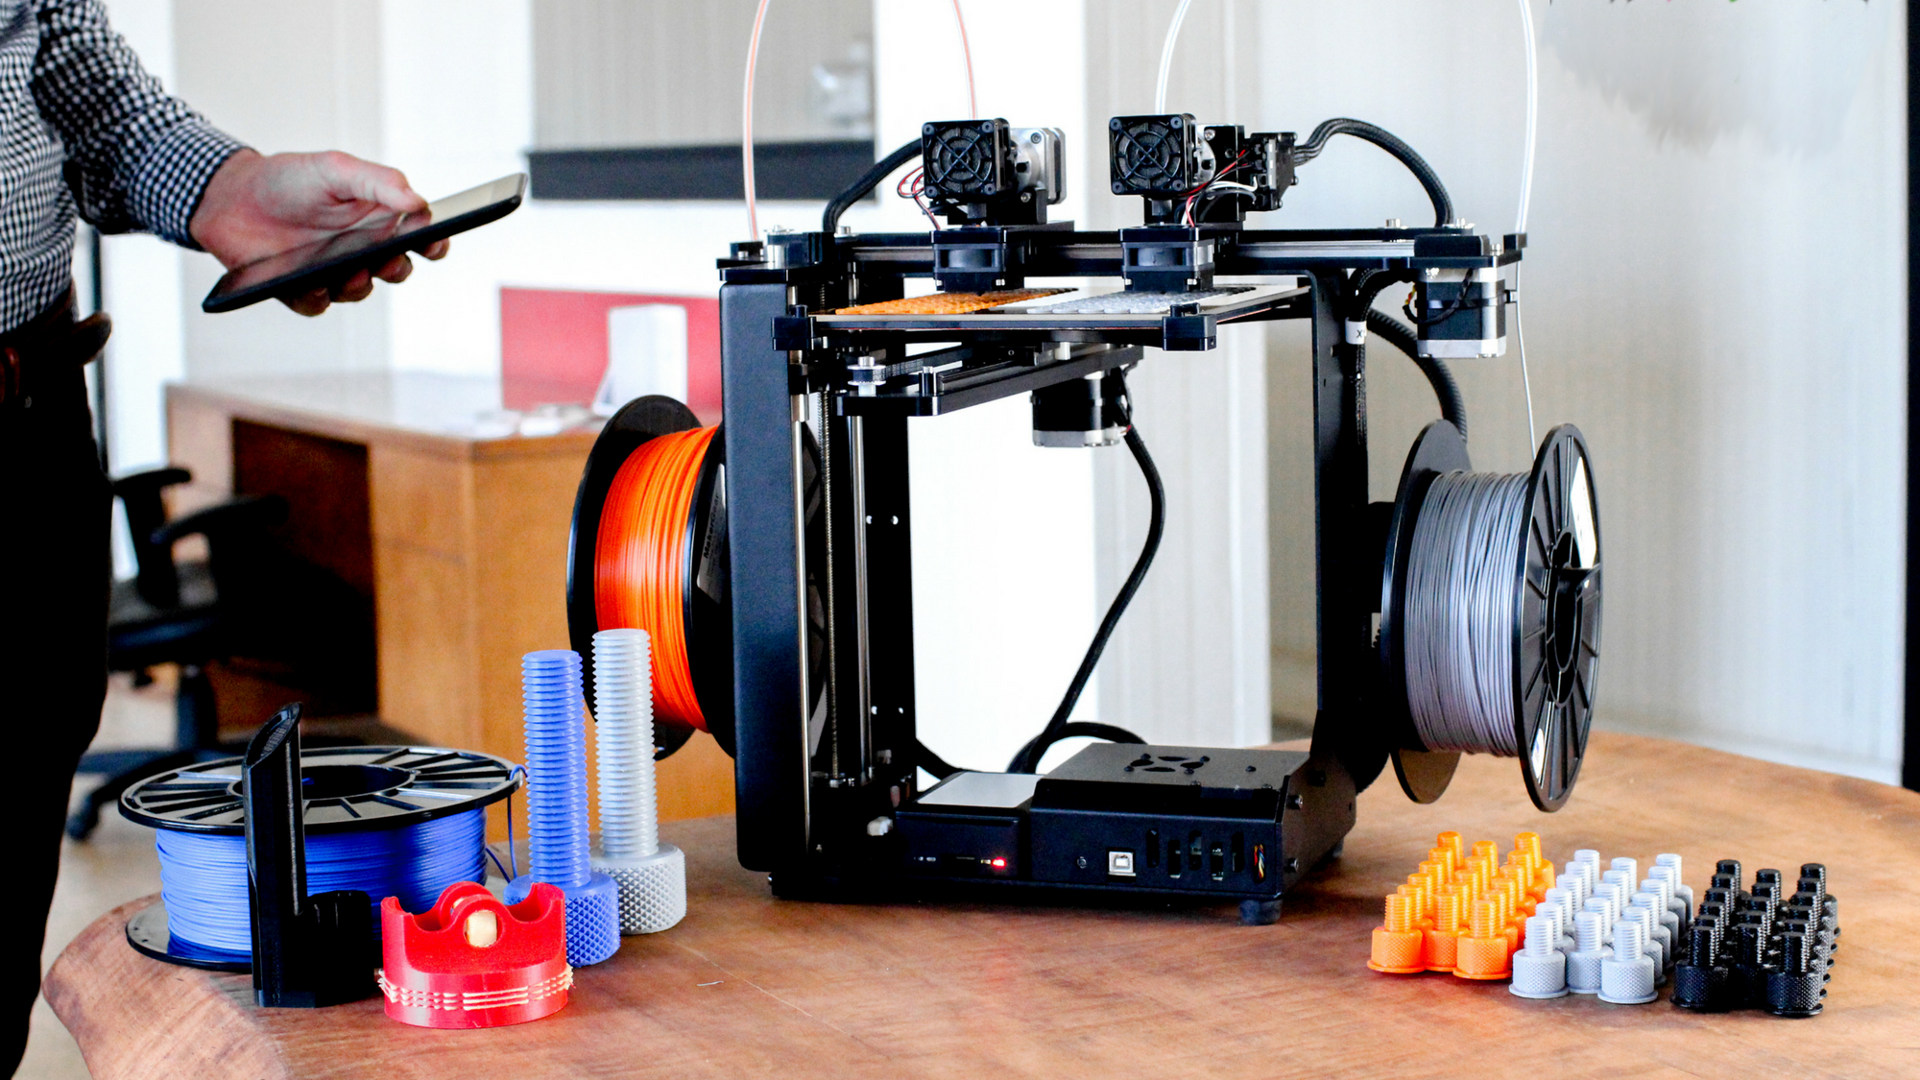 MakerGear Brings M3 Independent Dual Extruder 3D Printer to RAPID + TCT | All3DP